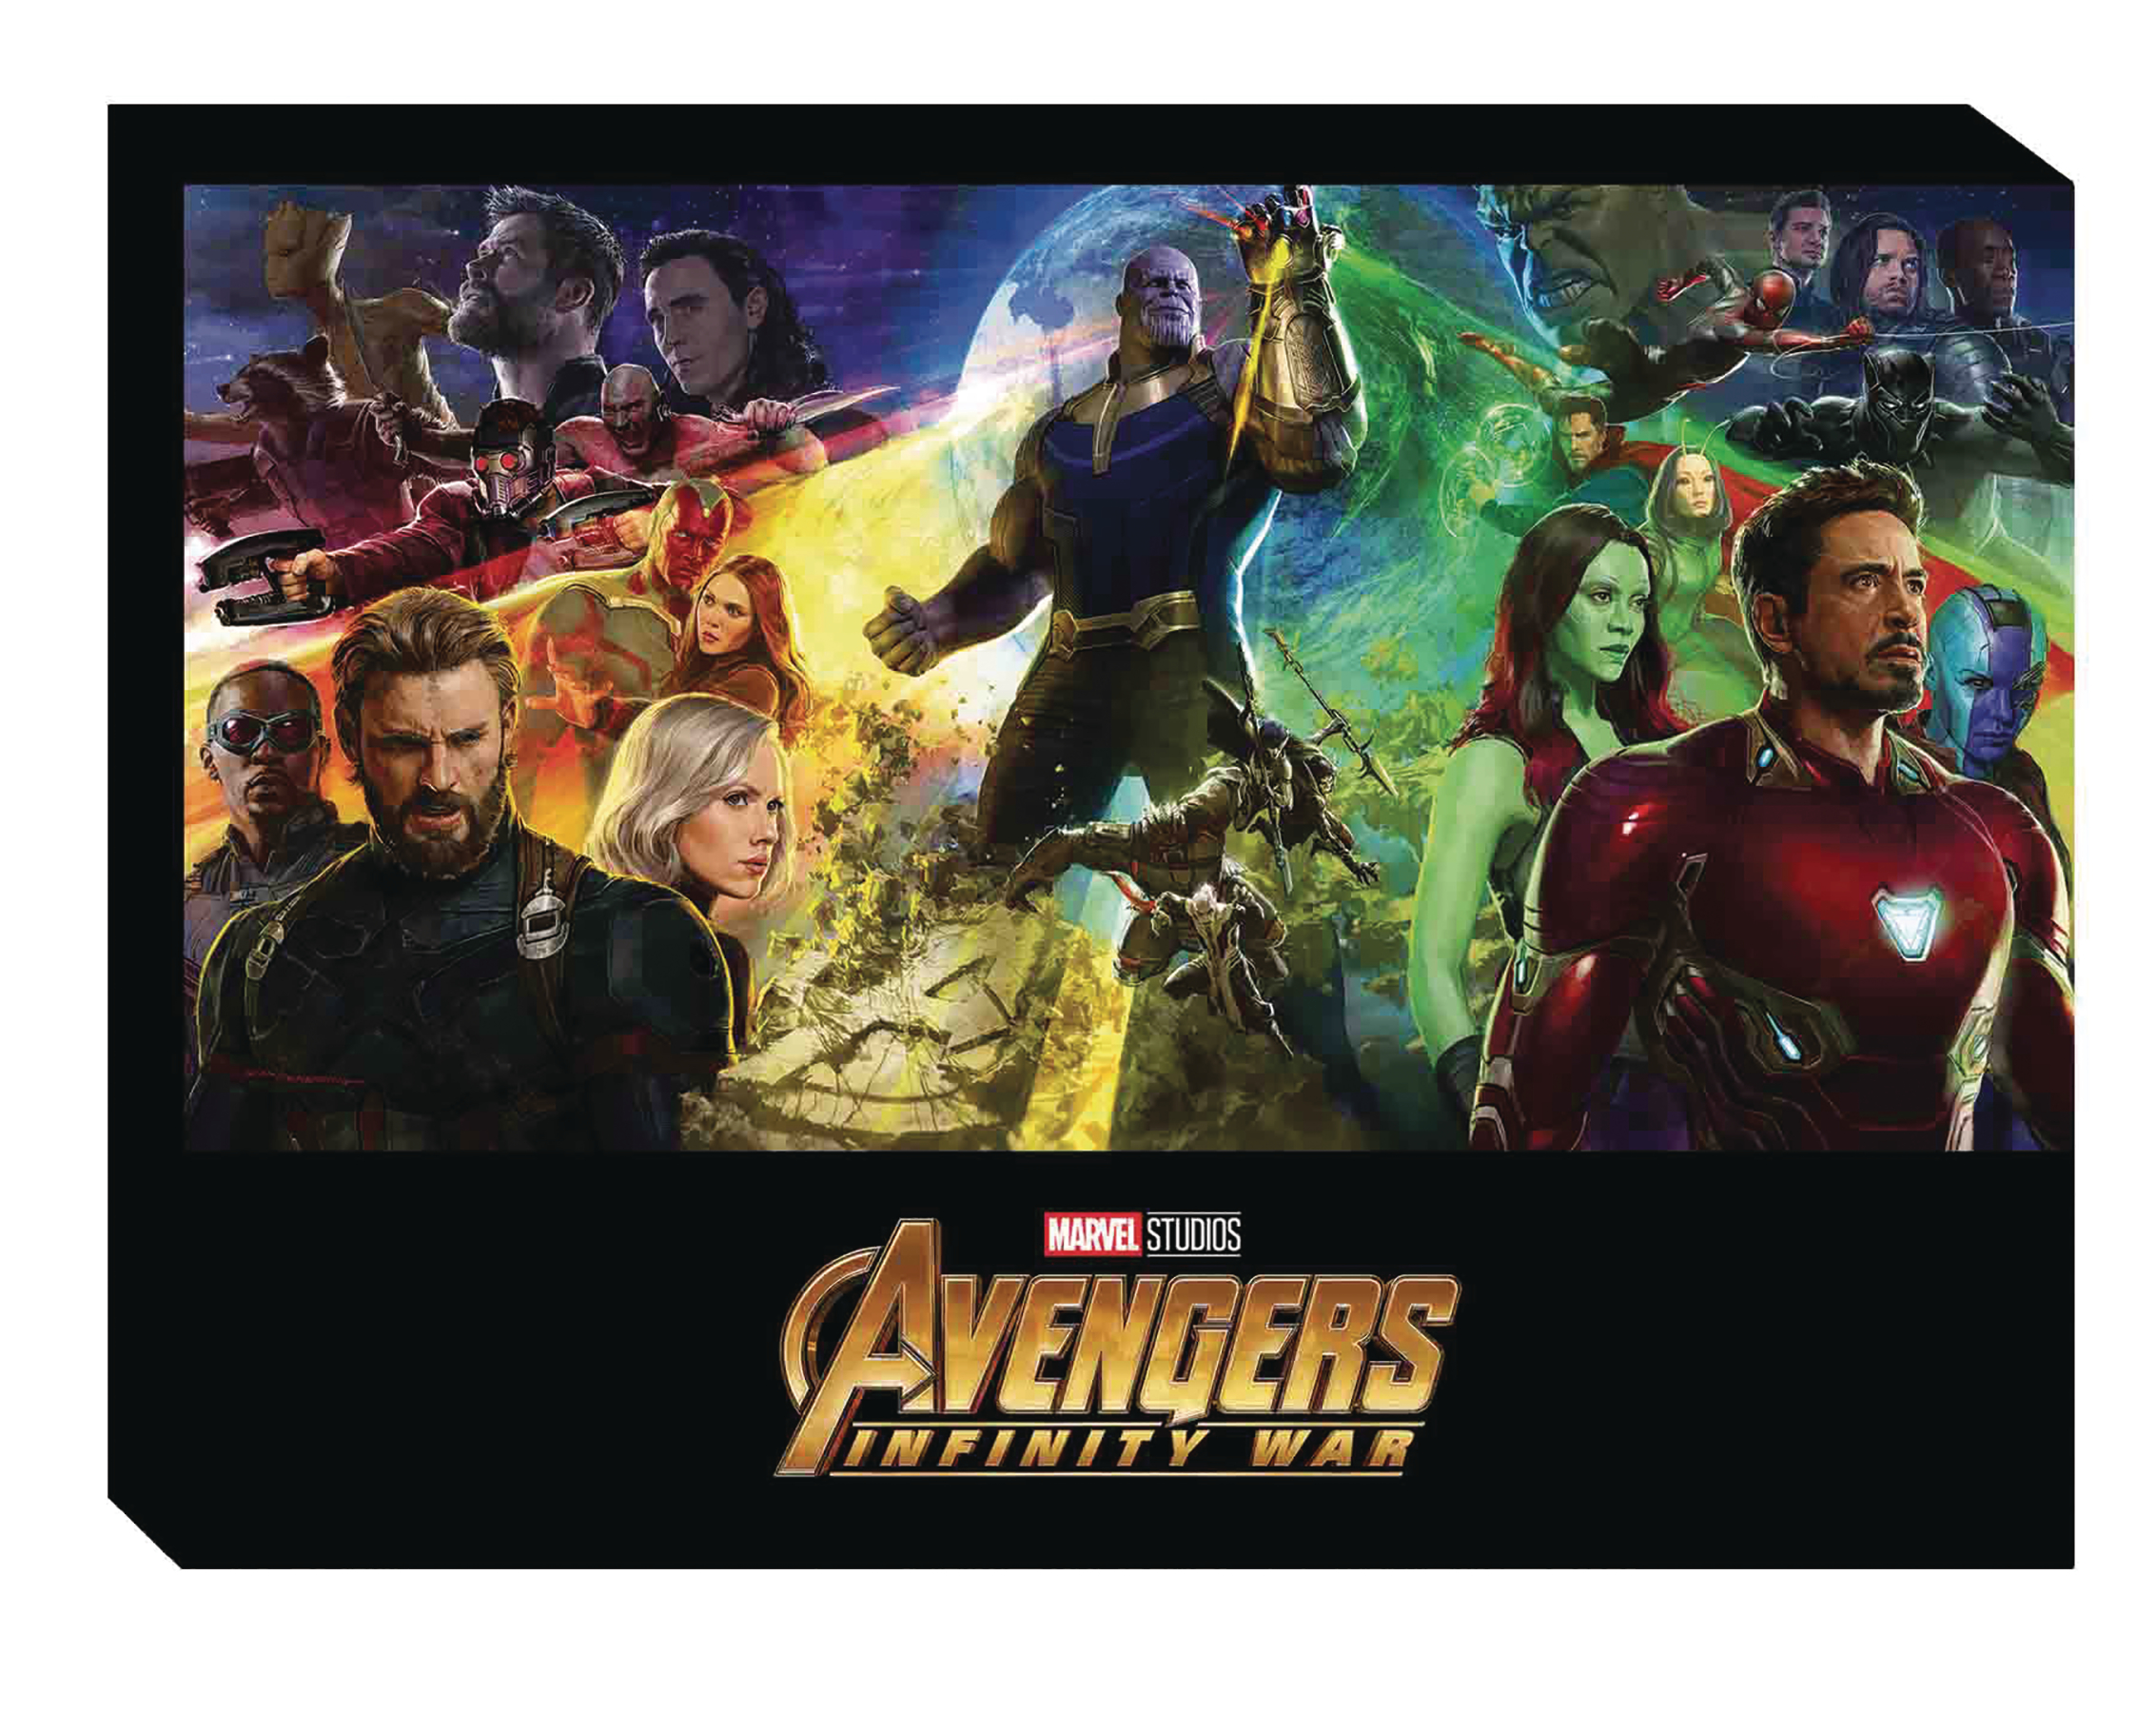 MARVELS AVENGERS INFINITY WAR HC ART OF MOVIE SLIPCASE